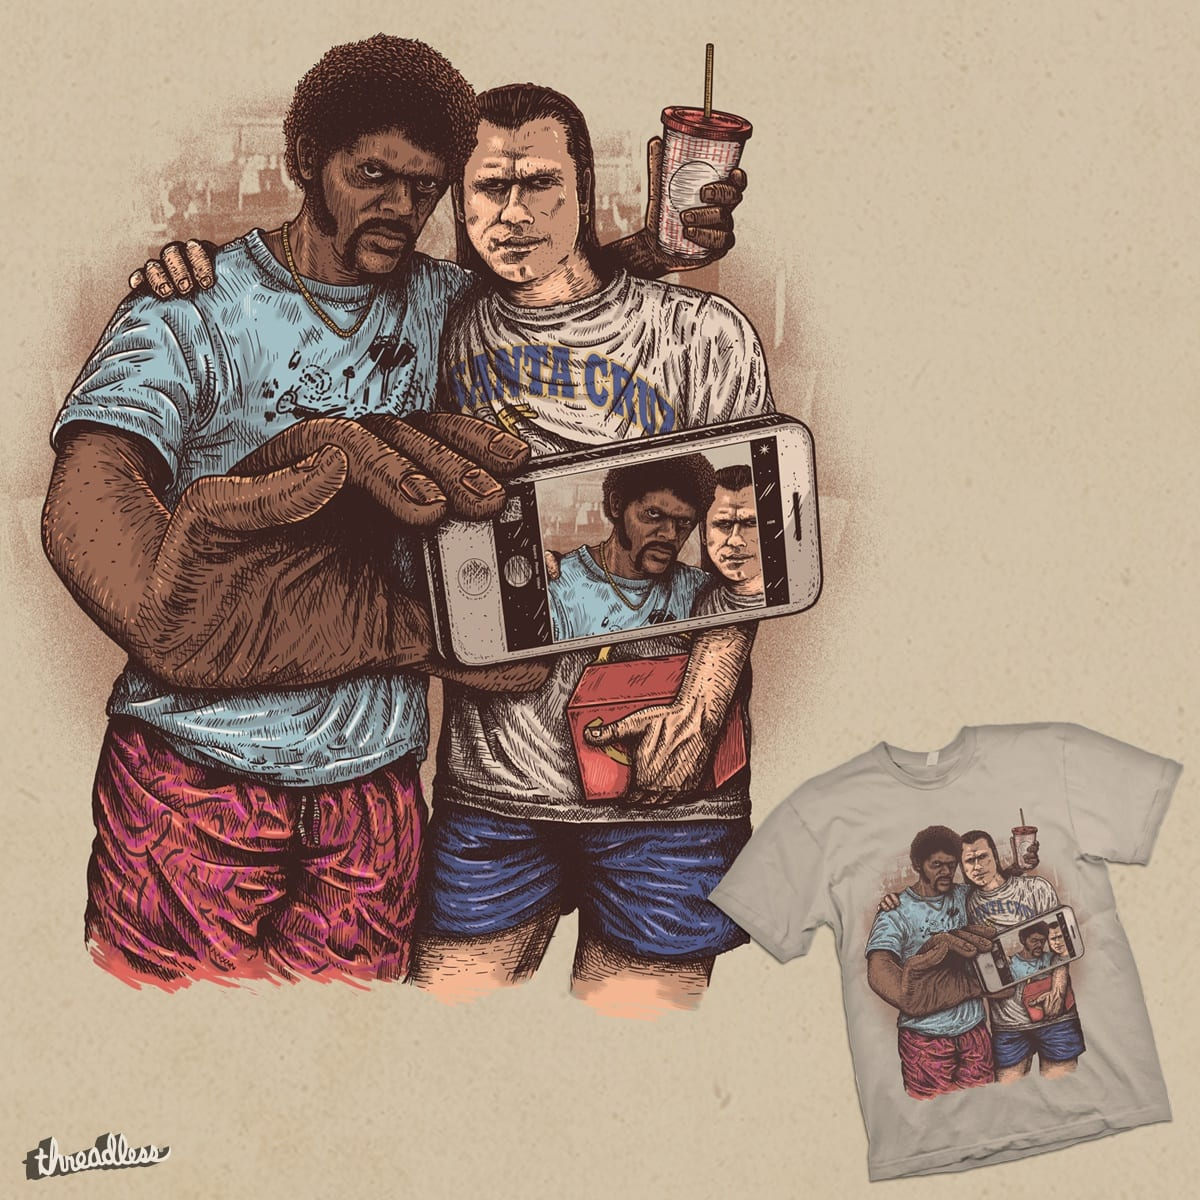 Pulp Selfie by eliude_valverde on Threadless